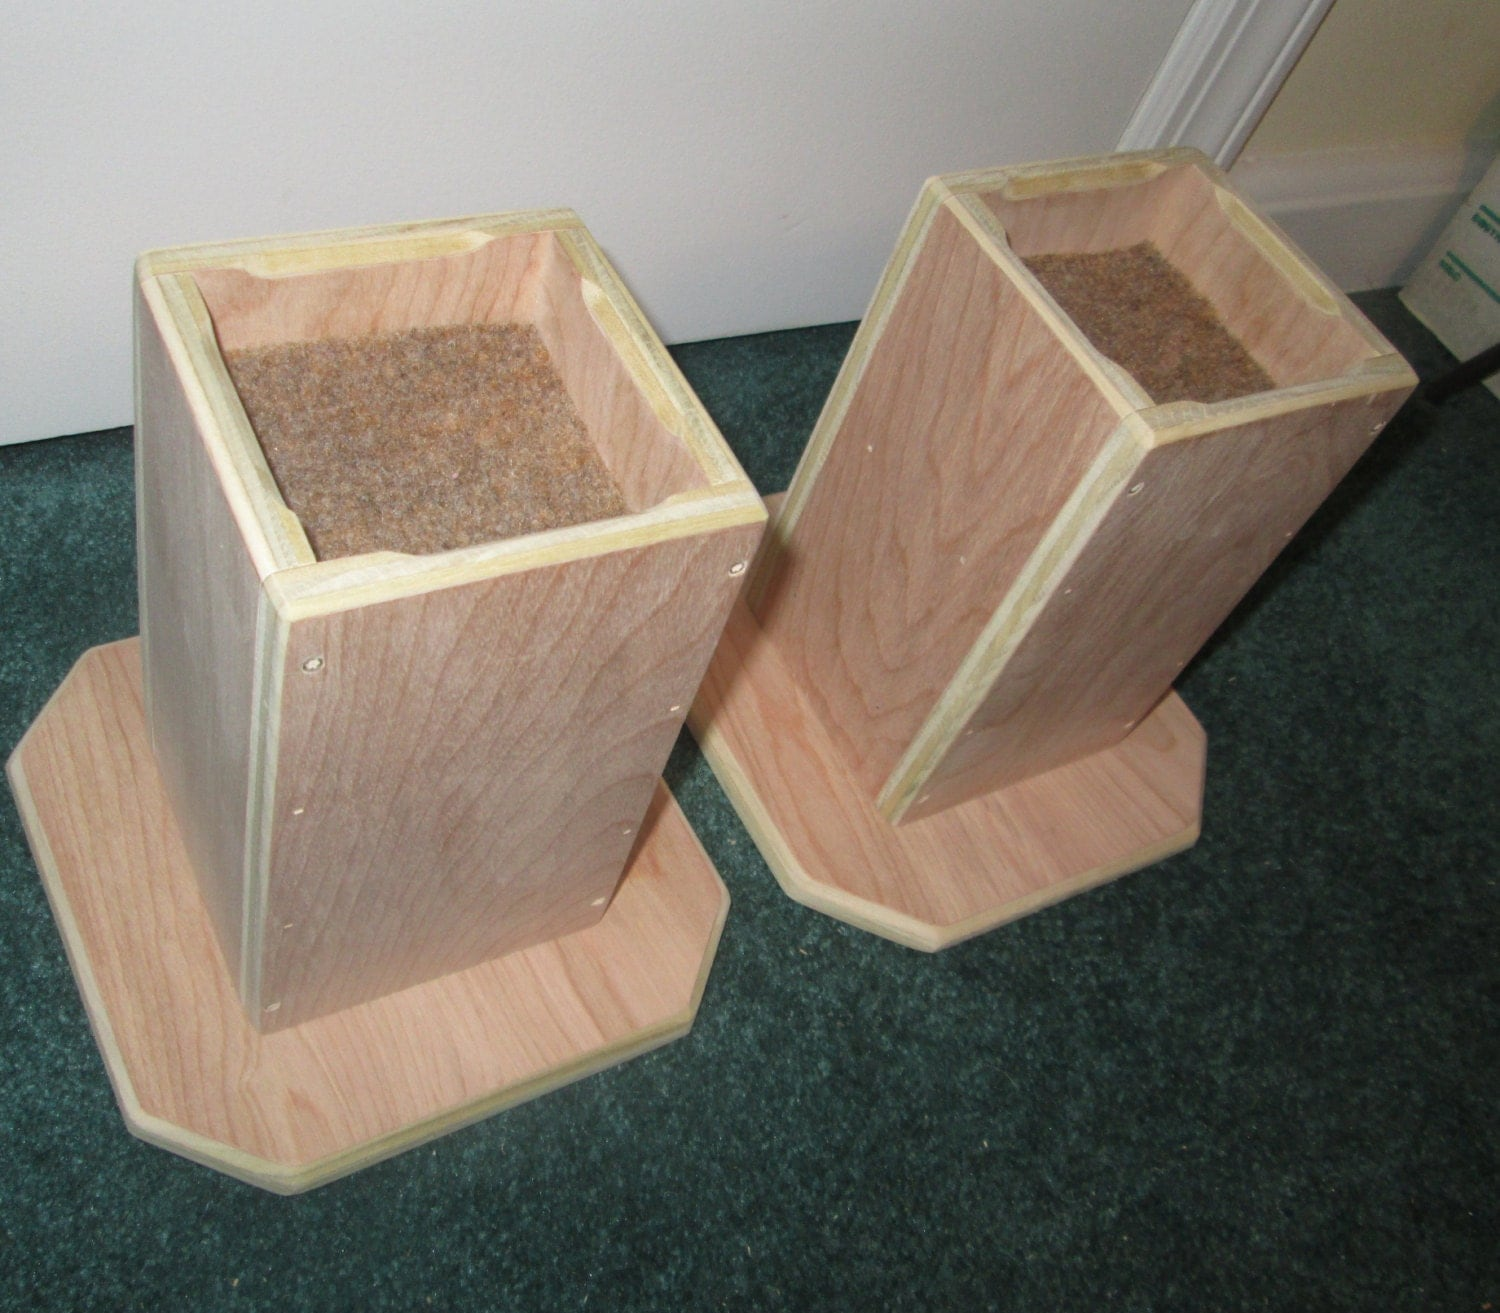 Make your own bed risers -  Zoom